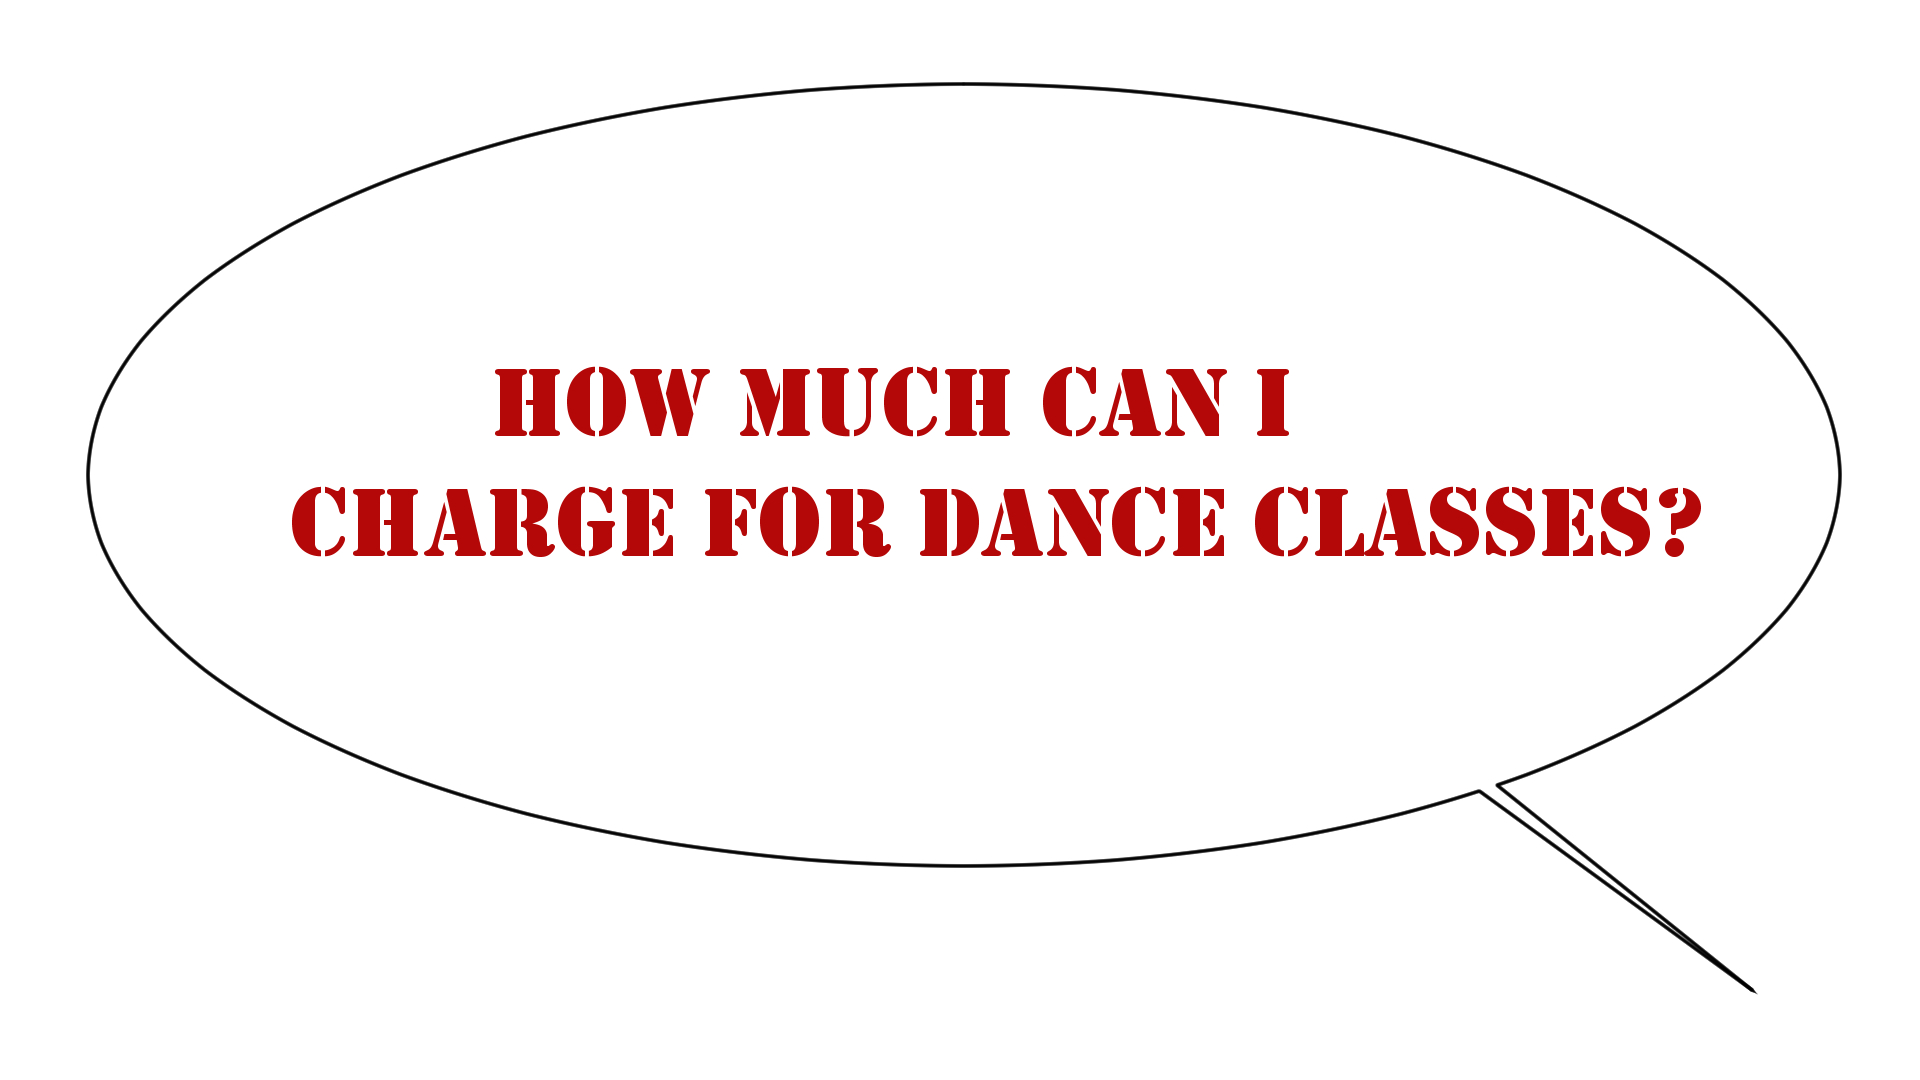 A speech bubble asking how much you can charge for dance classes